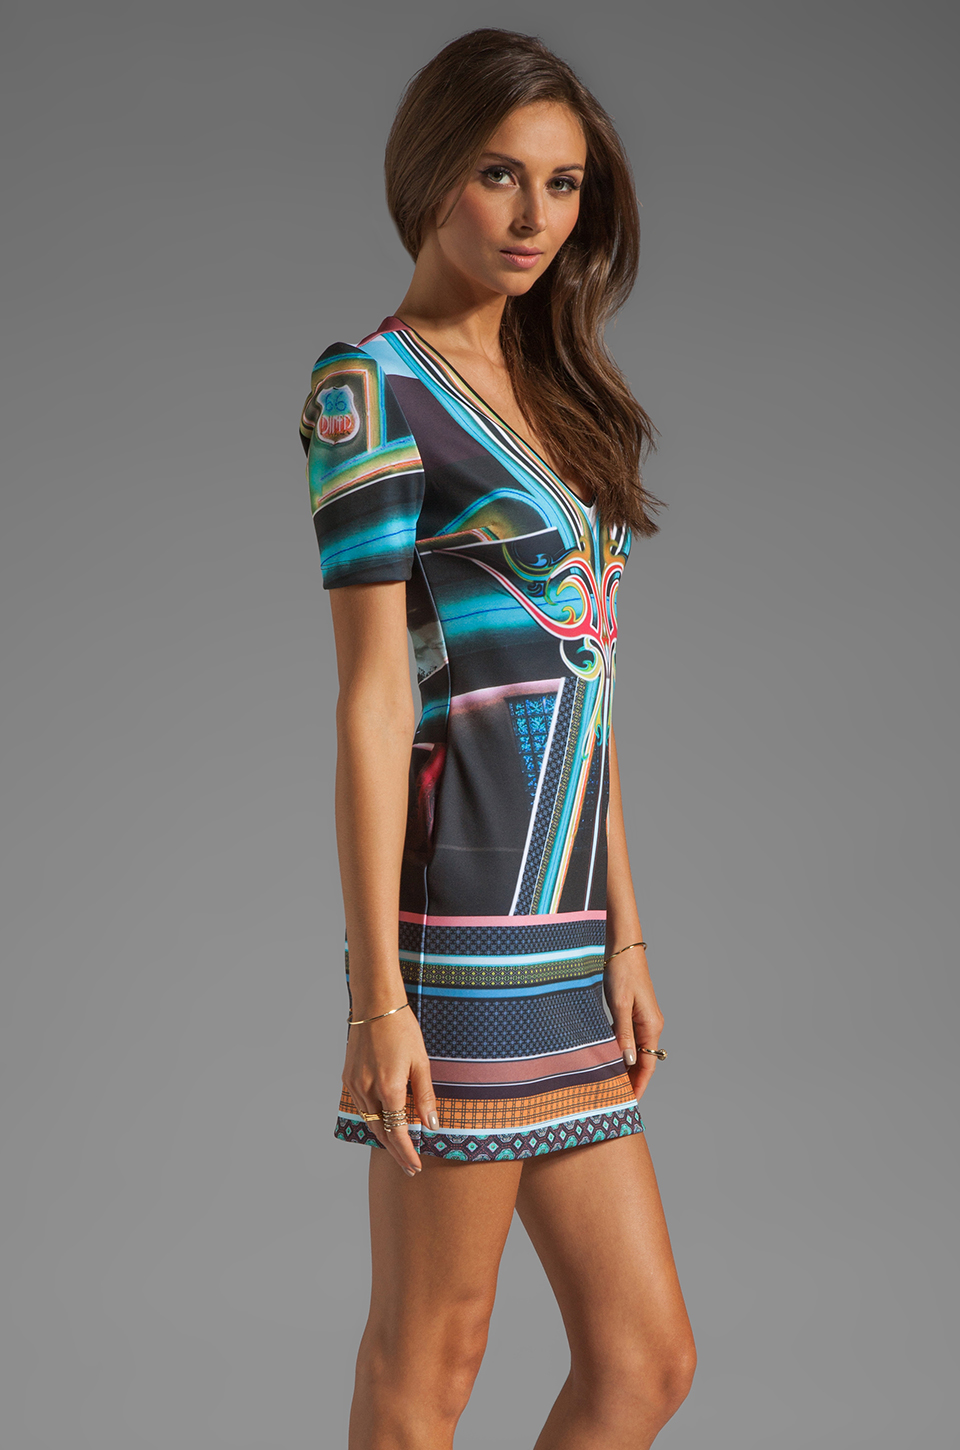 Clover Canyon Midnight Diner Neoprene Dress in Multi